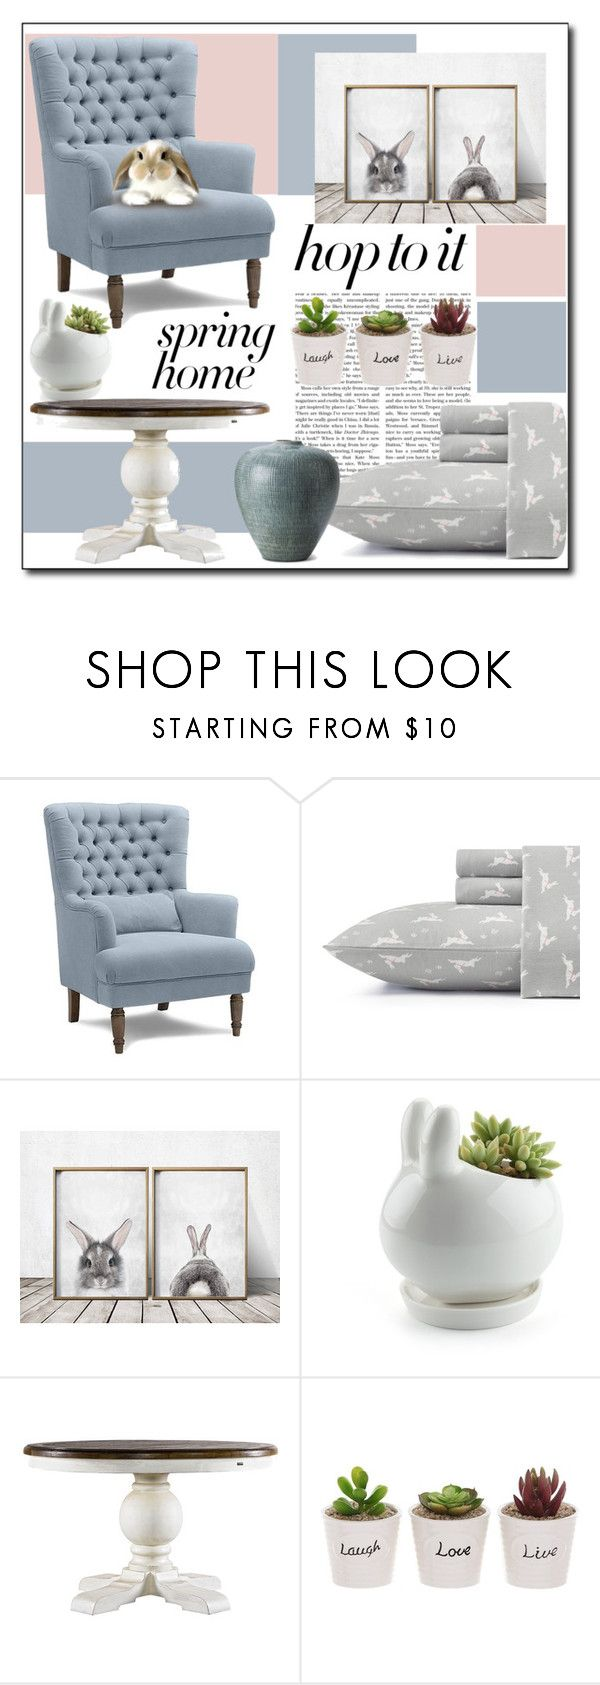 """Bunny Home"" by polybaby ❤ liked on Polyvore featuring interior, interiors, interior design, home, home decor, interior decorating, Laura Ashley, springhome and bunnydecor"